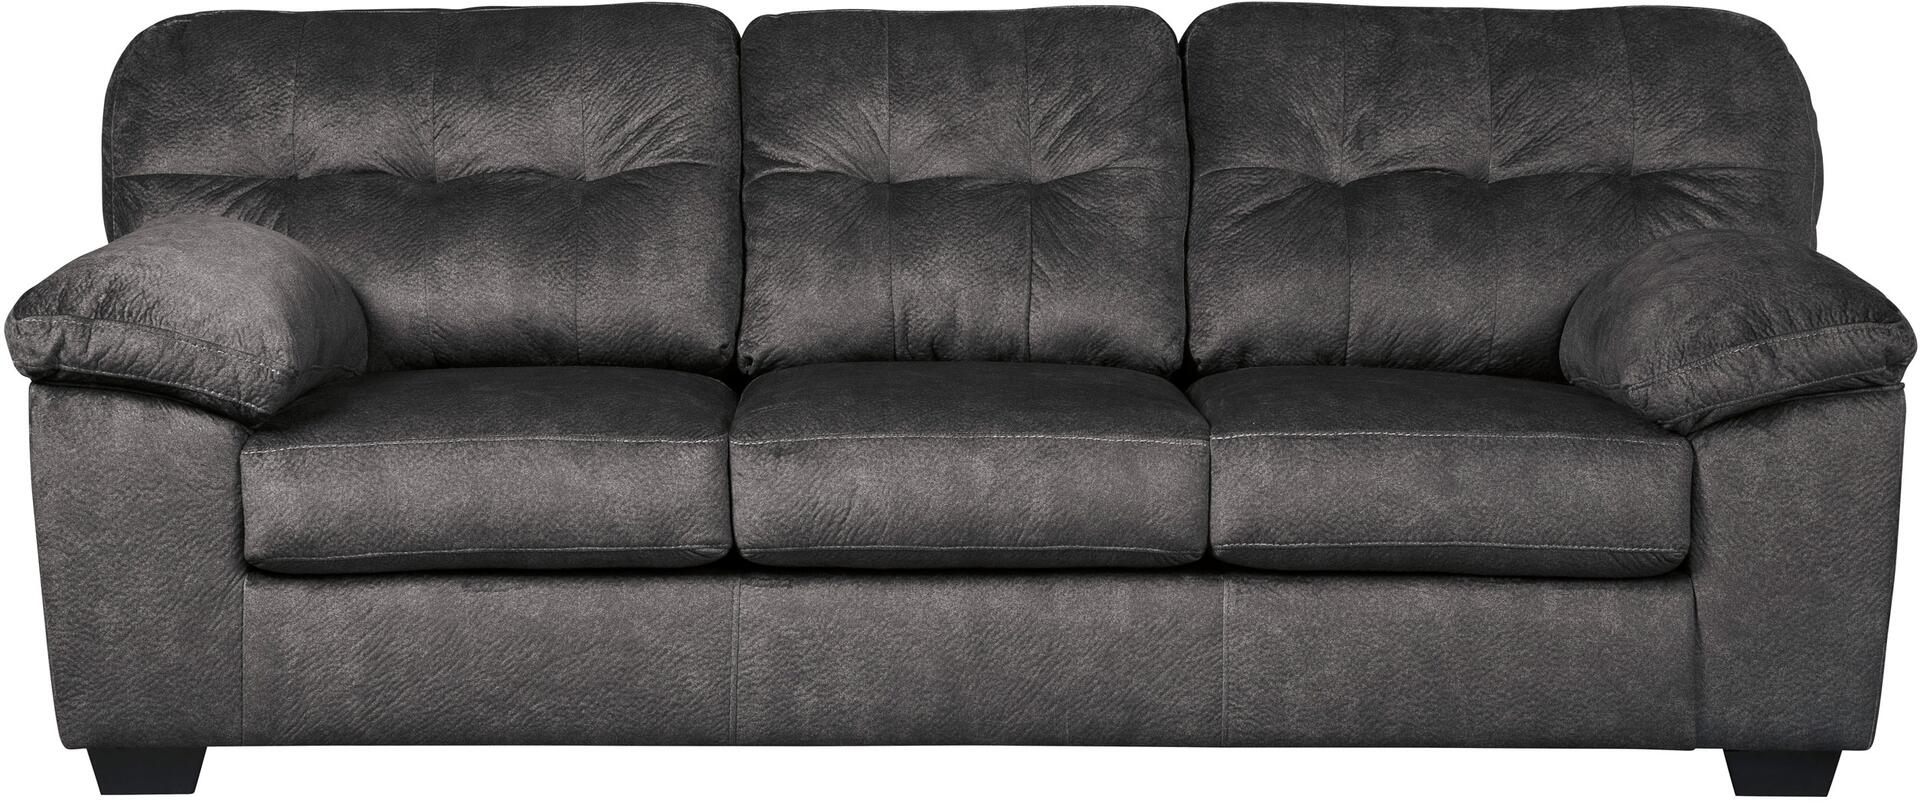 Signature Design By Ashley 7050938 Accrington Series Stationary Fabric Sofa Appliances Connection